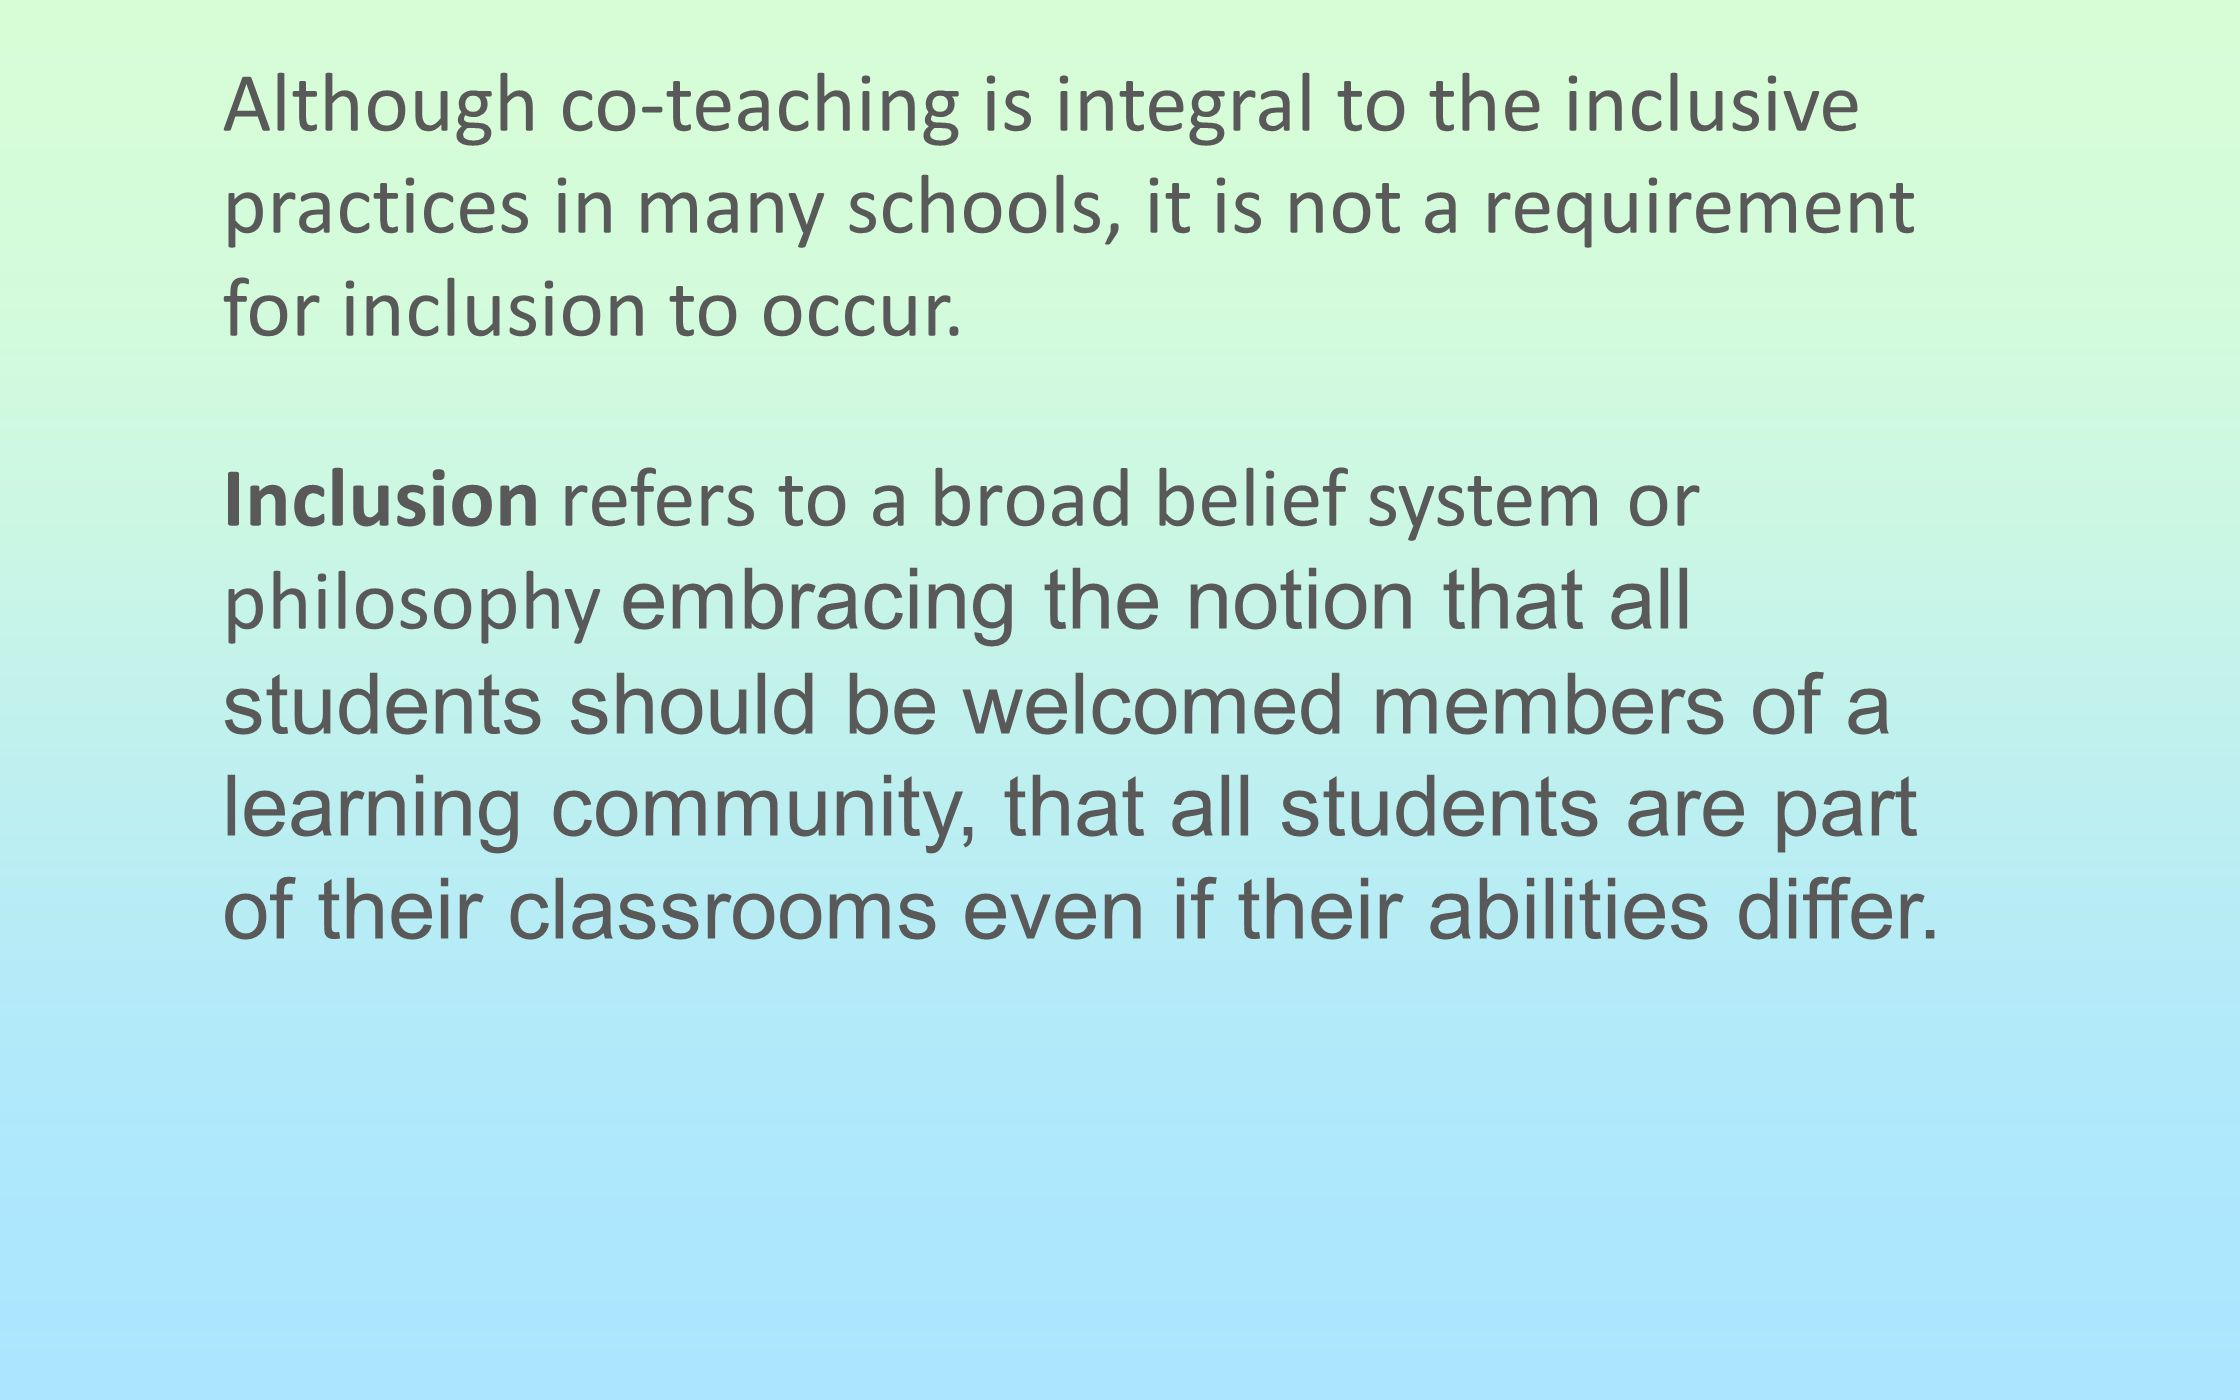 Although co-teaching is integral to the inclusive practices in many schools, it is not a requirement for inclusion to occur.